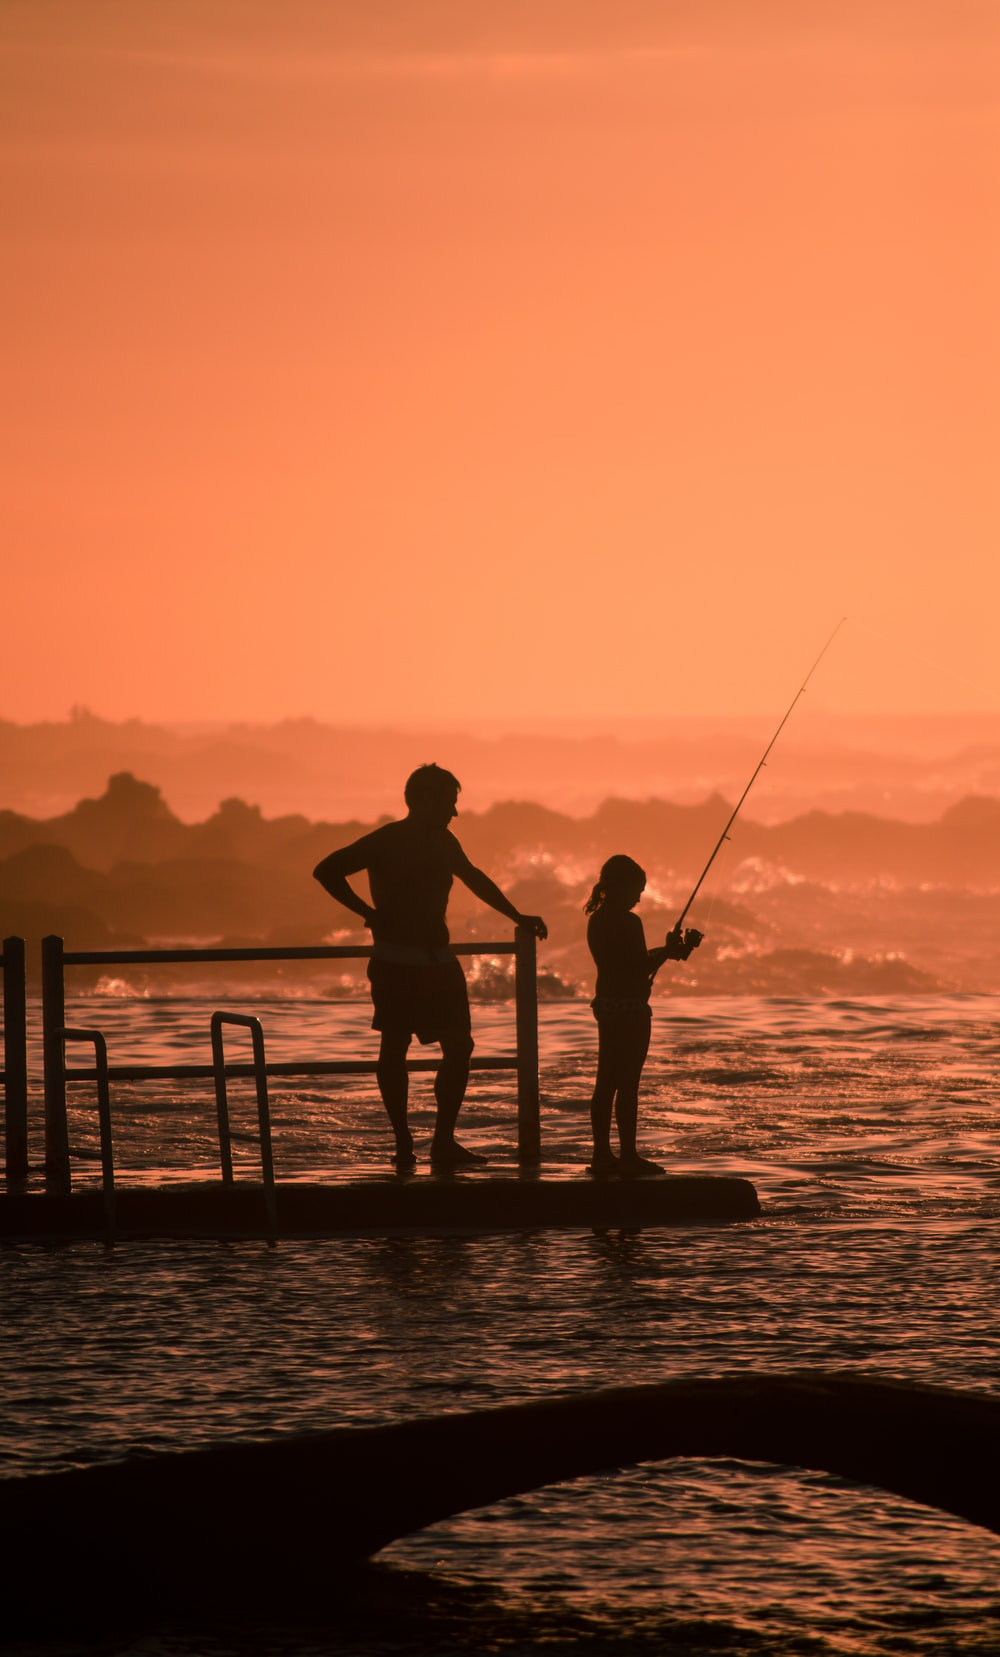 silhouette of man and girl fishing during sunset